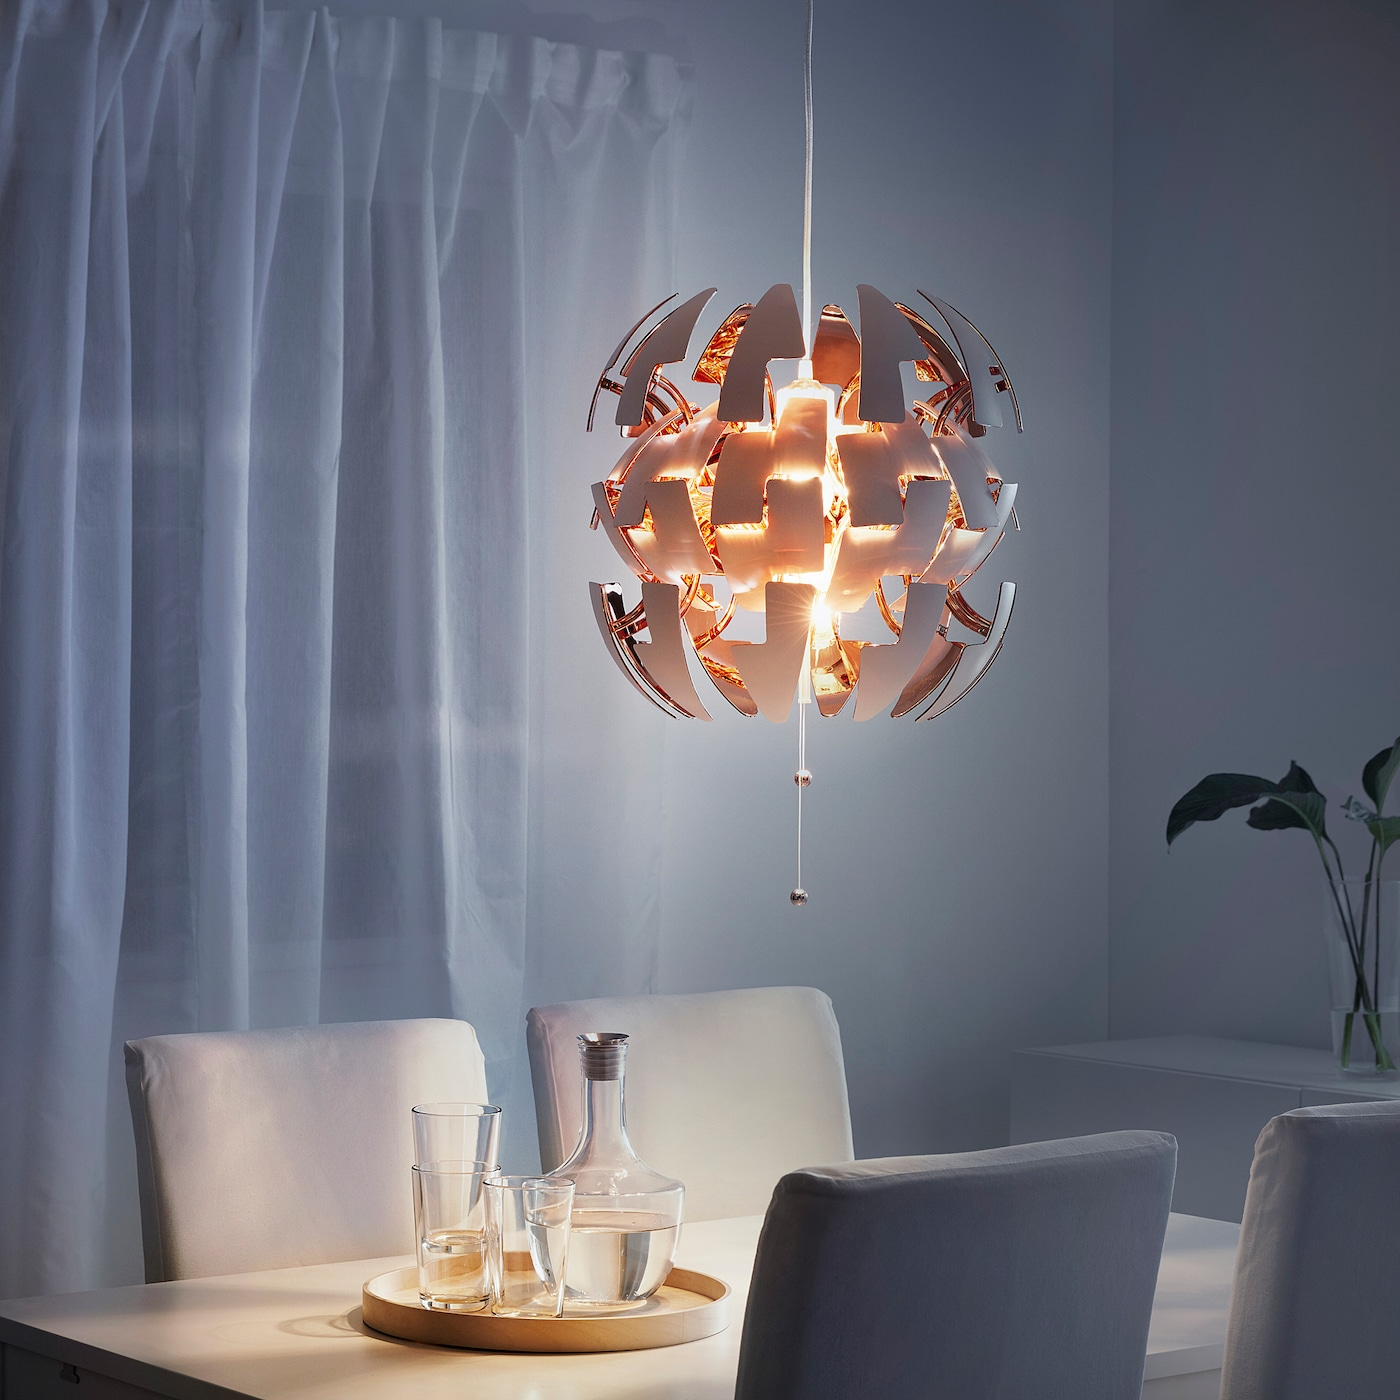 Ikea Ps 2014 Pendant Lamp White Copper Color 14 Ikea